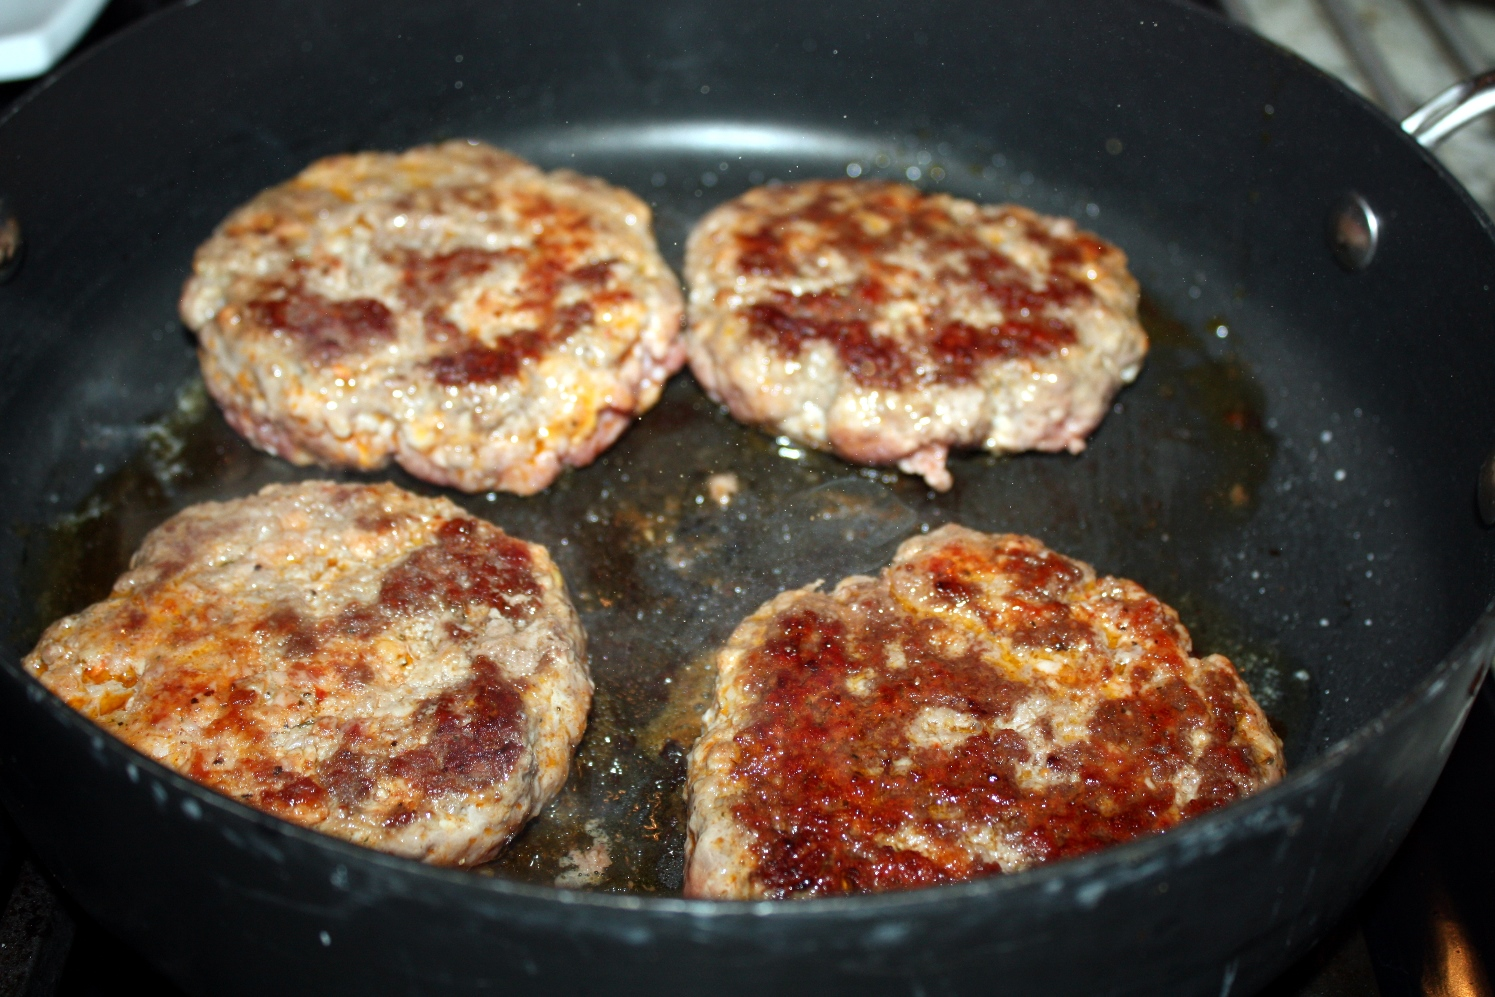 pepperoni pizza pepperoni pizza burgers delicious pepperoni pizza